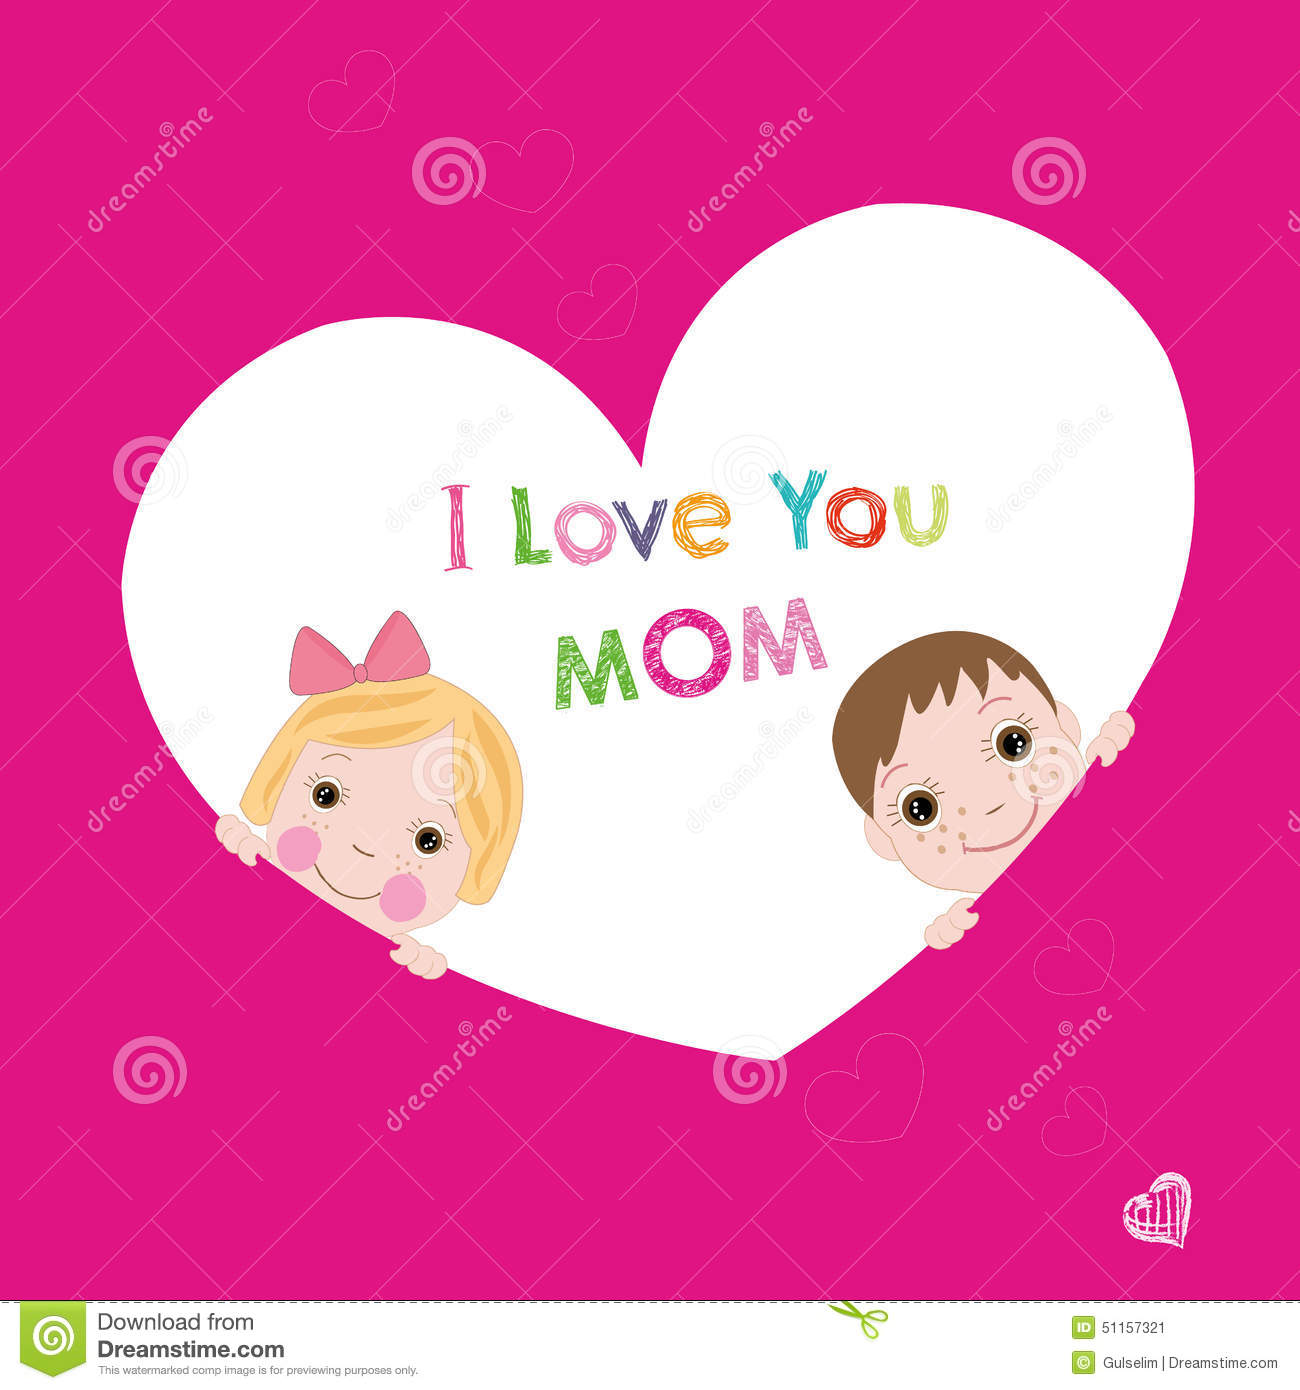 I love you mom with children mothers day greeting card stock vector i love you mom with children mother s day greeting card kristyandbryce Gallery